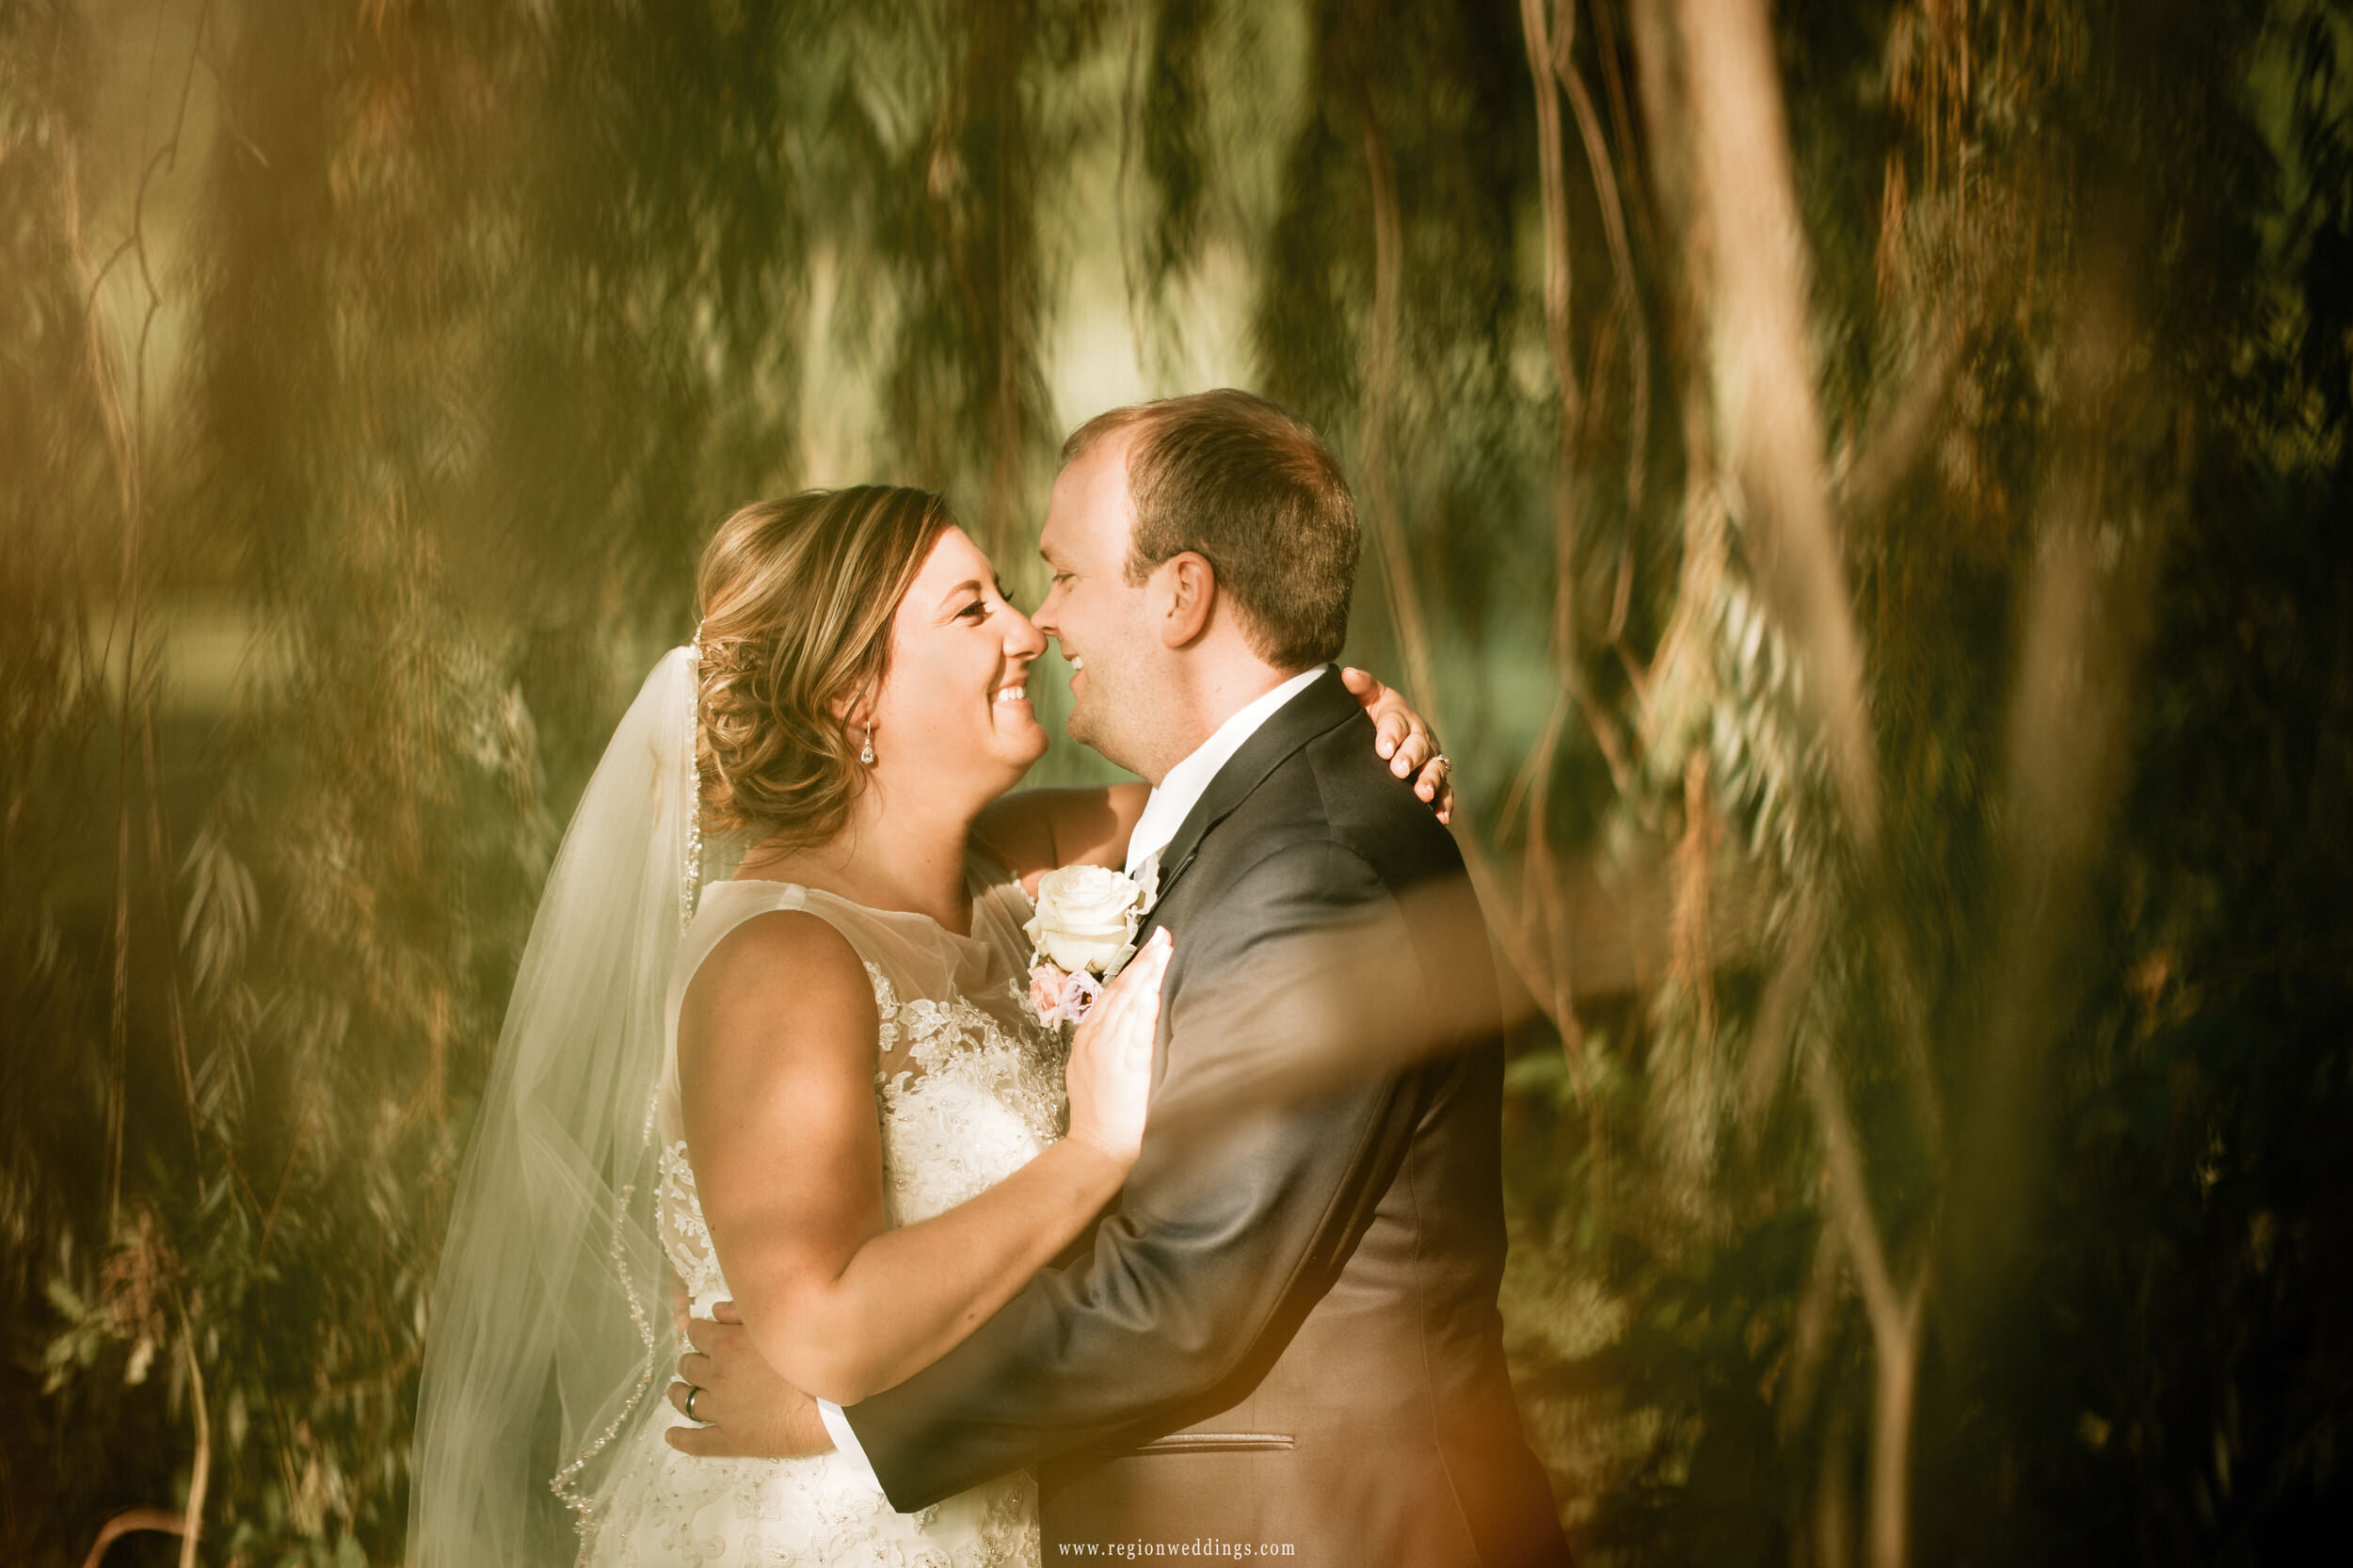 A fun moment between bride and groom underneath a weeping willow tree.